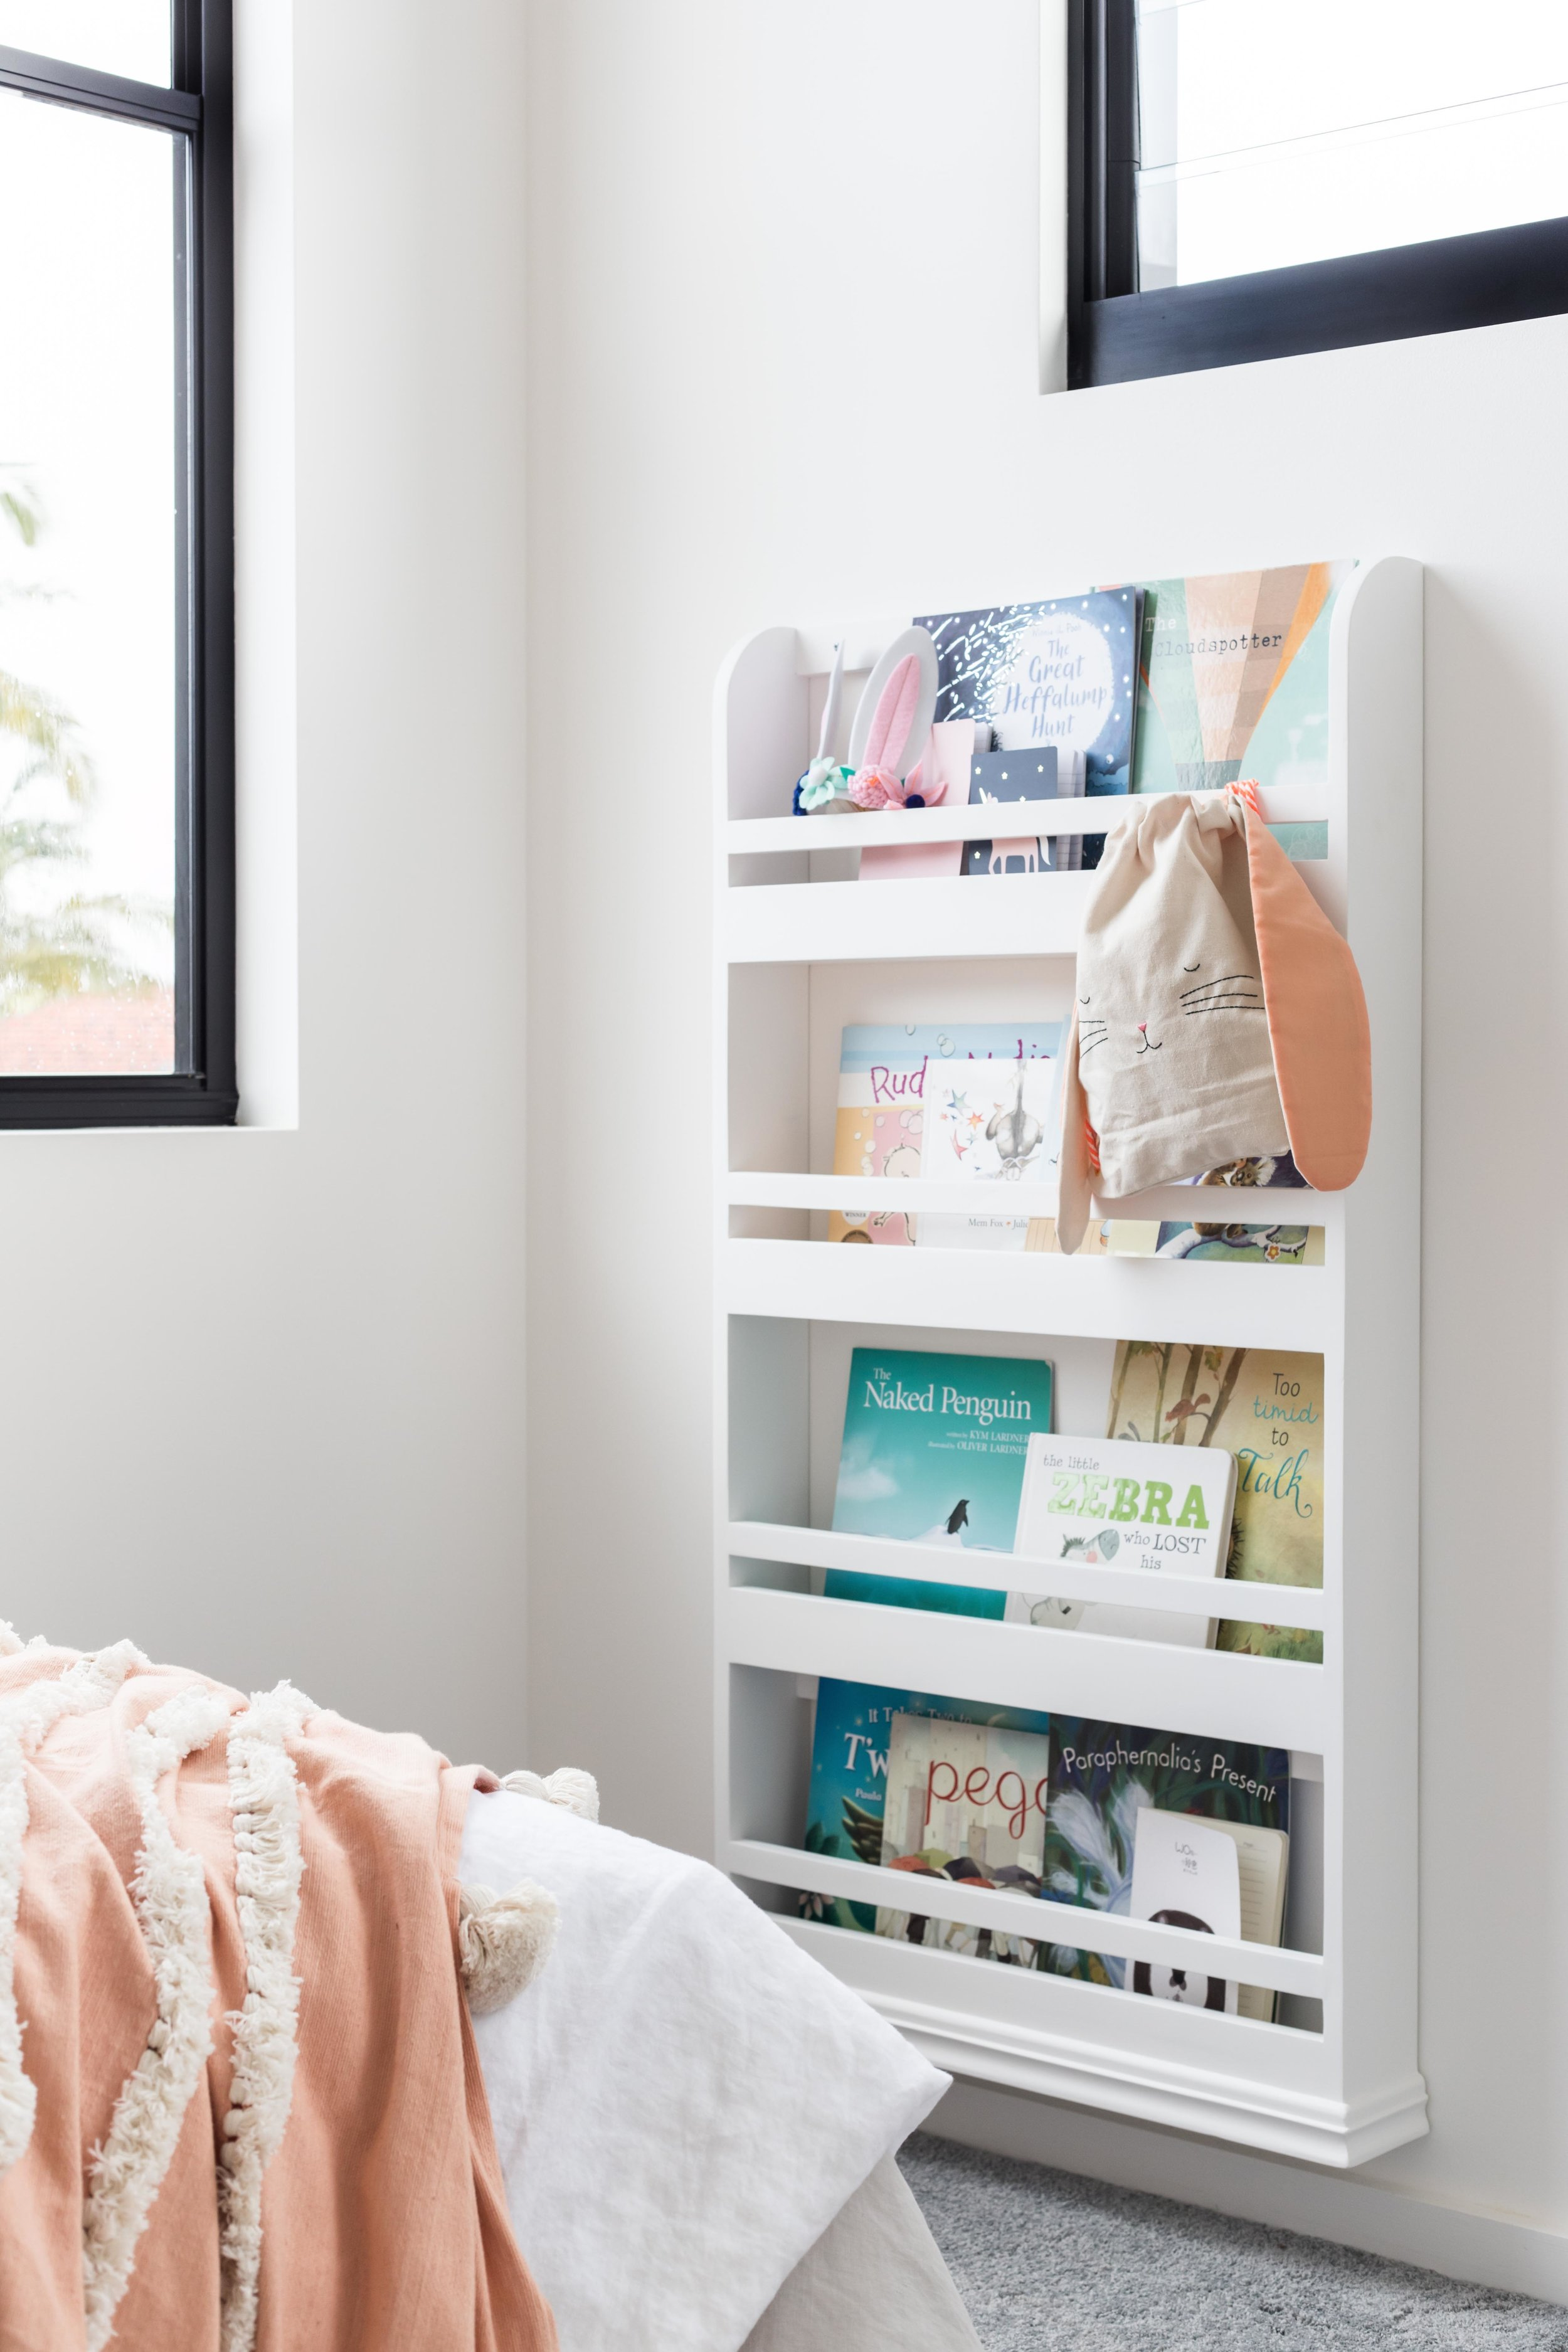 Investment Girls Room low res-9.jpg